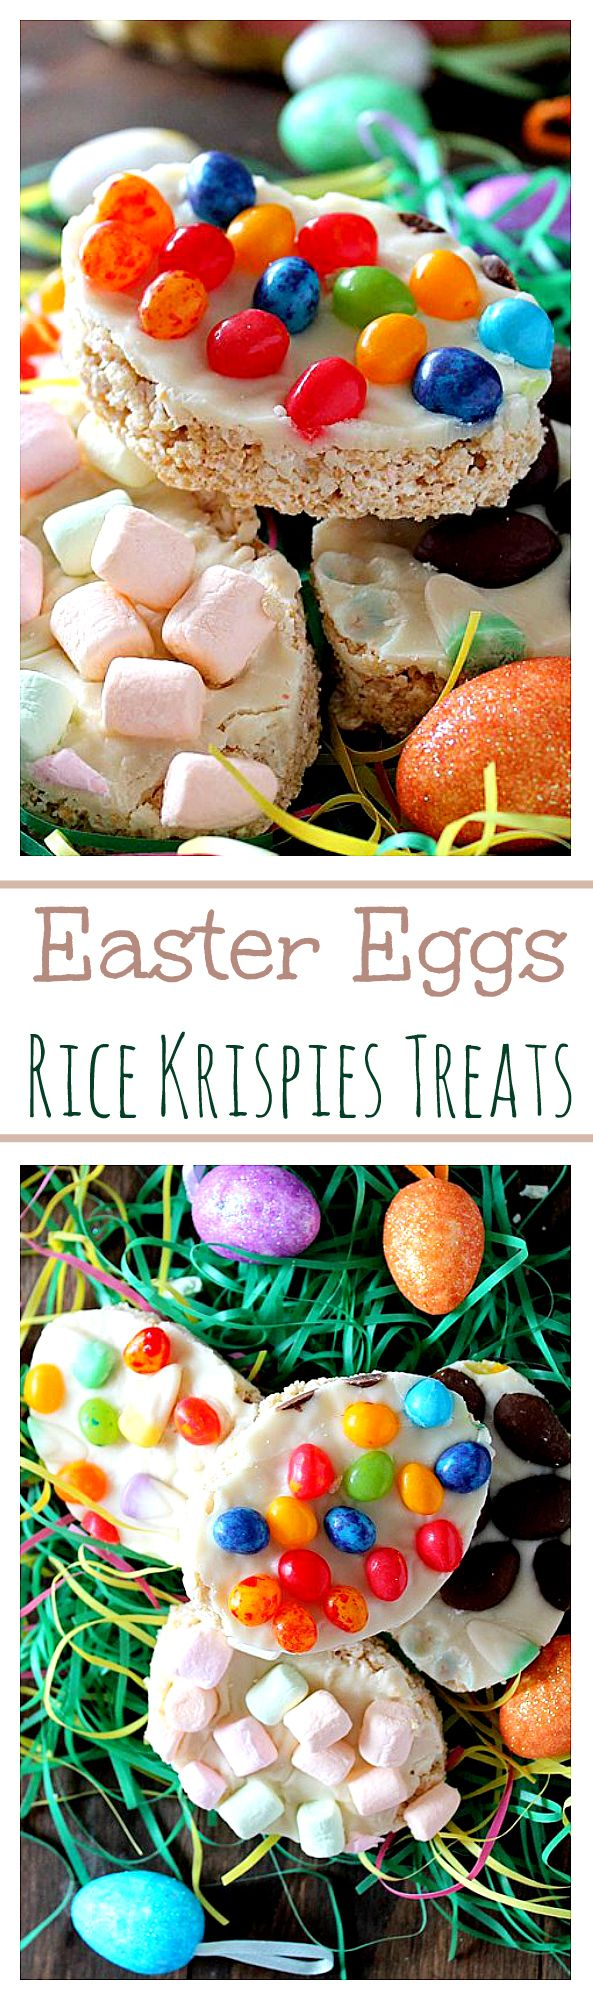 Easter Eggs Rice Krispies Treats - Make these super gooey Easter ...